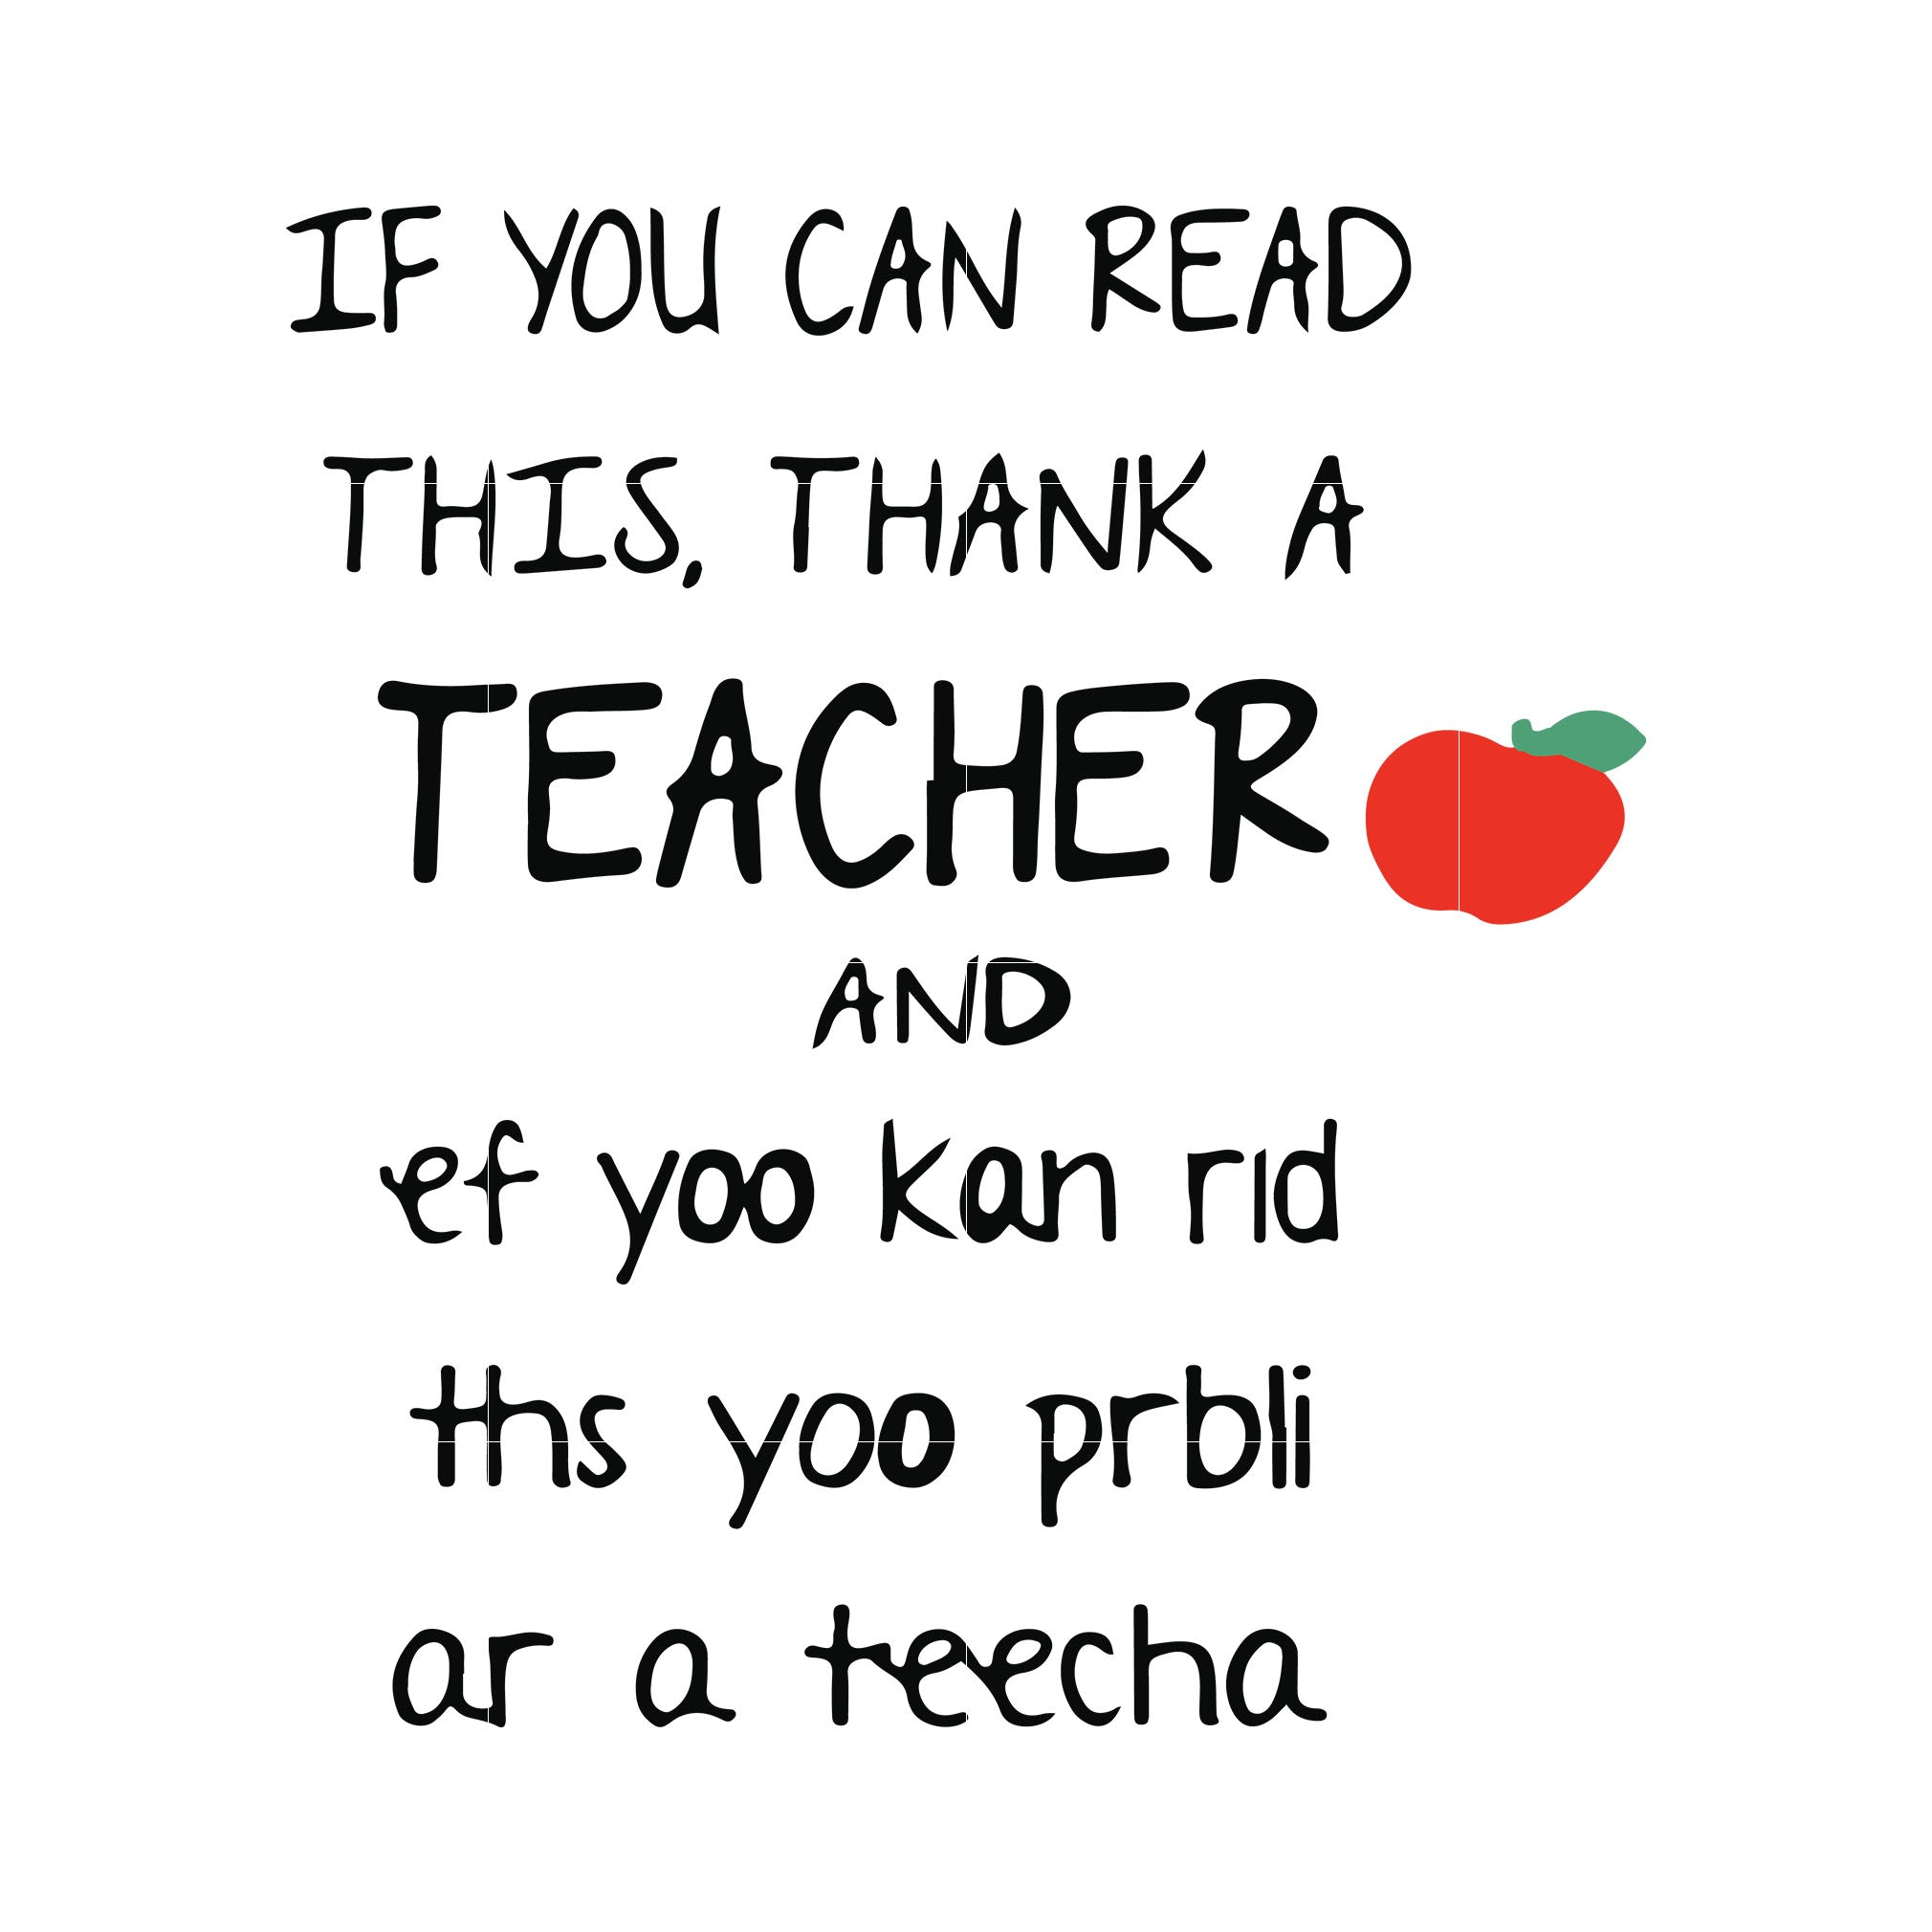 If you can read this thank a teacher and ef yoo kan rid ths yoo prbli ar a teecha svg,dxf,eps,png digital file